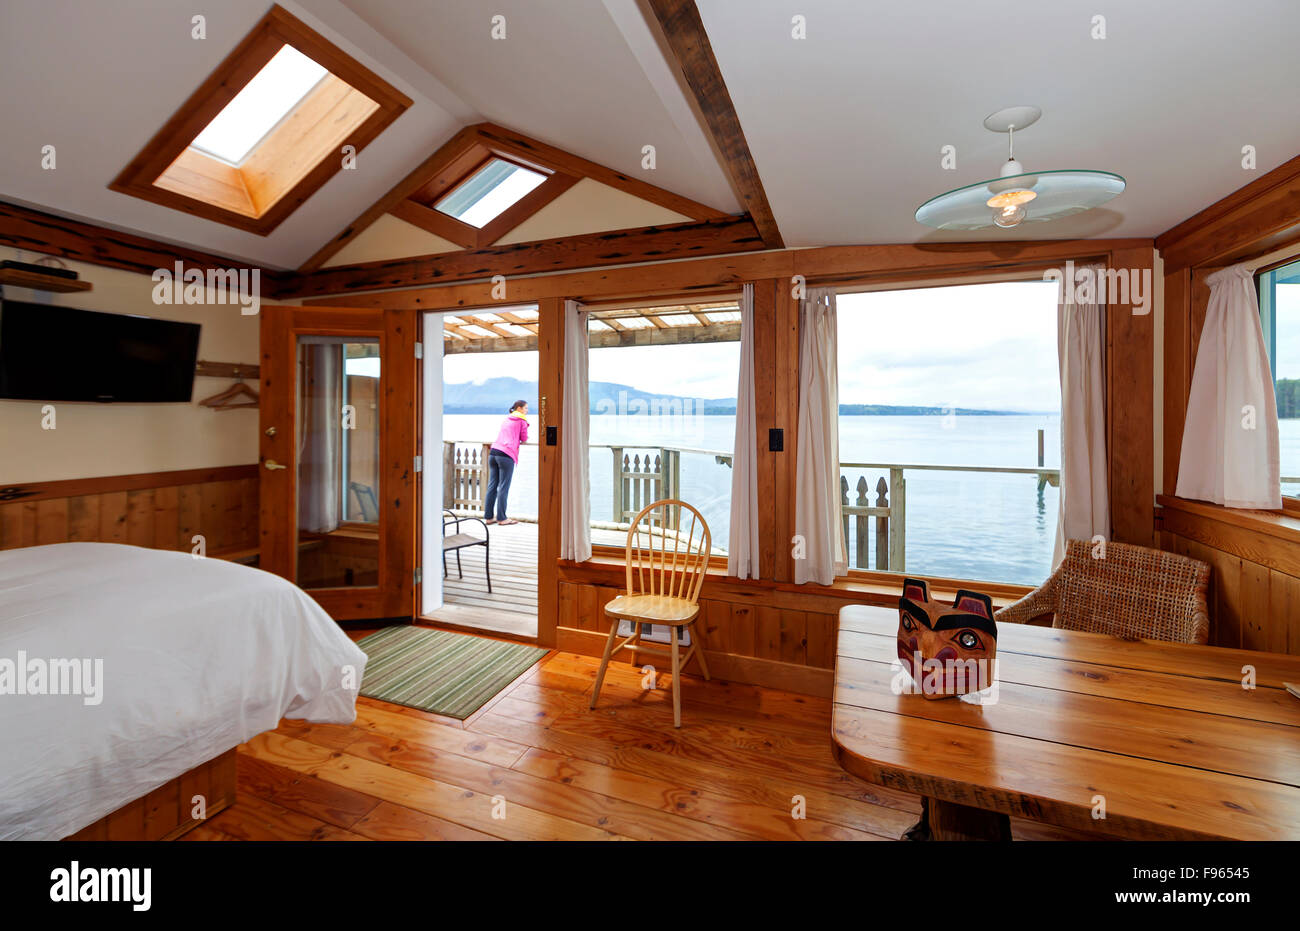 The Seine Boat inn provides waterfront accommodation for visitors to Alert Bay. - Stock Image